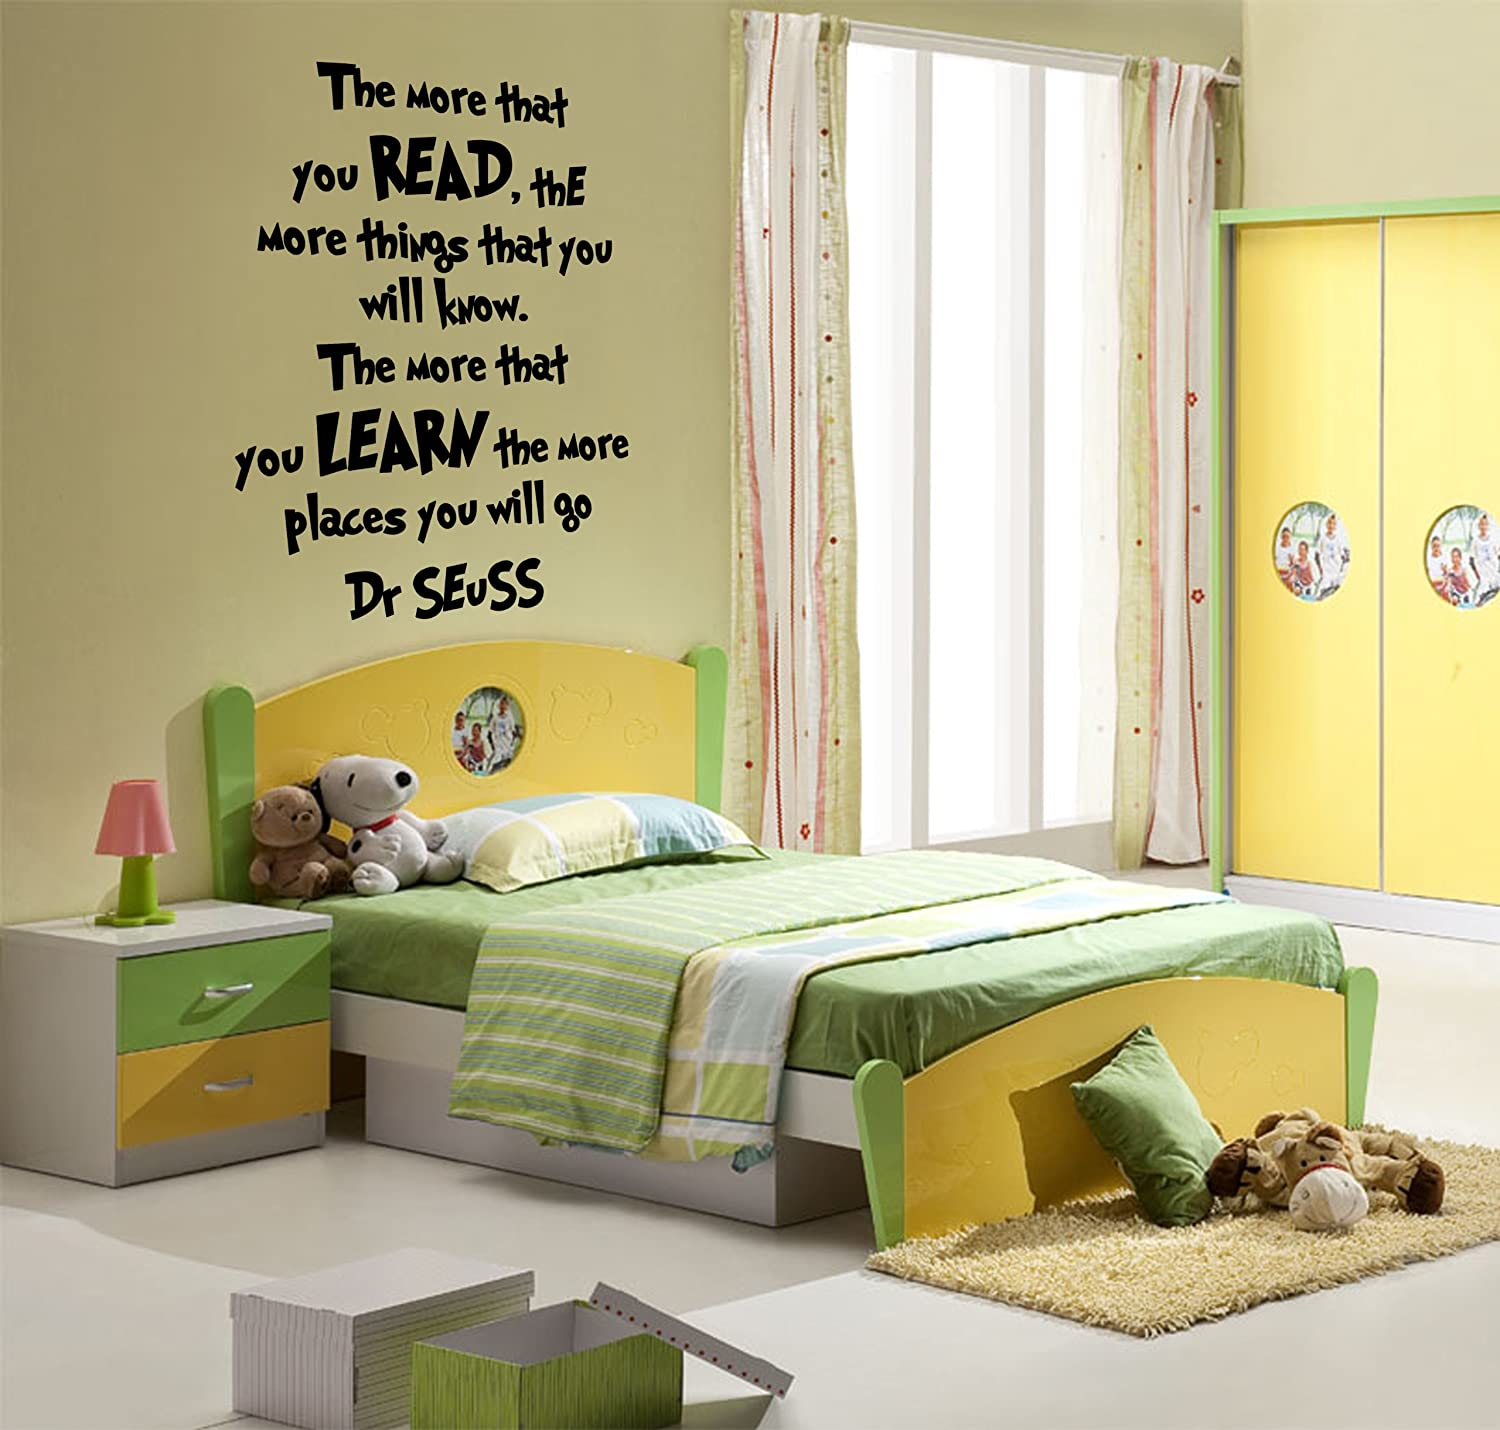 Amazon.com: THE MORE YOU READ THE MORE YOU LEARN DR SEUSS, Wall Art ...